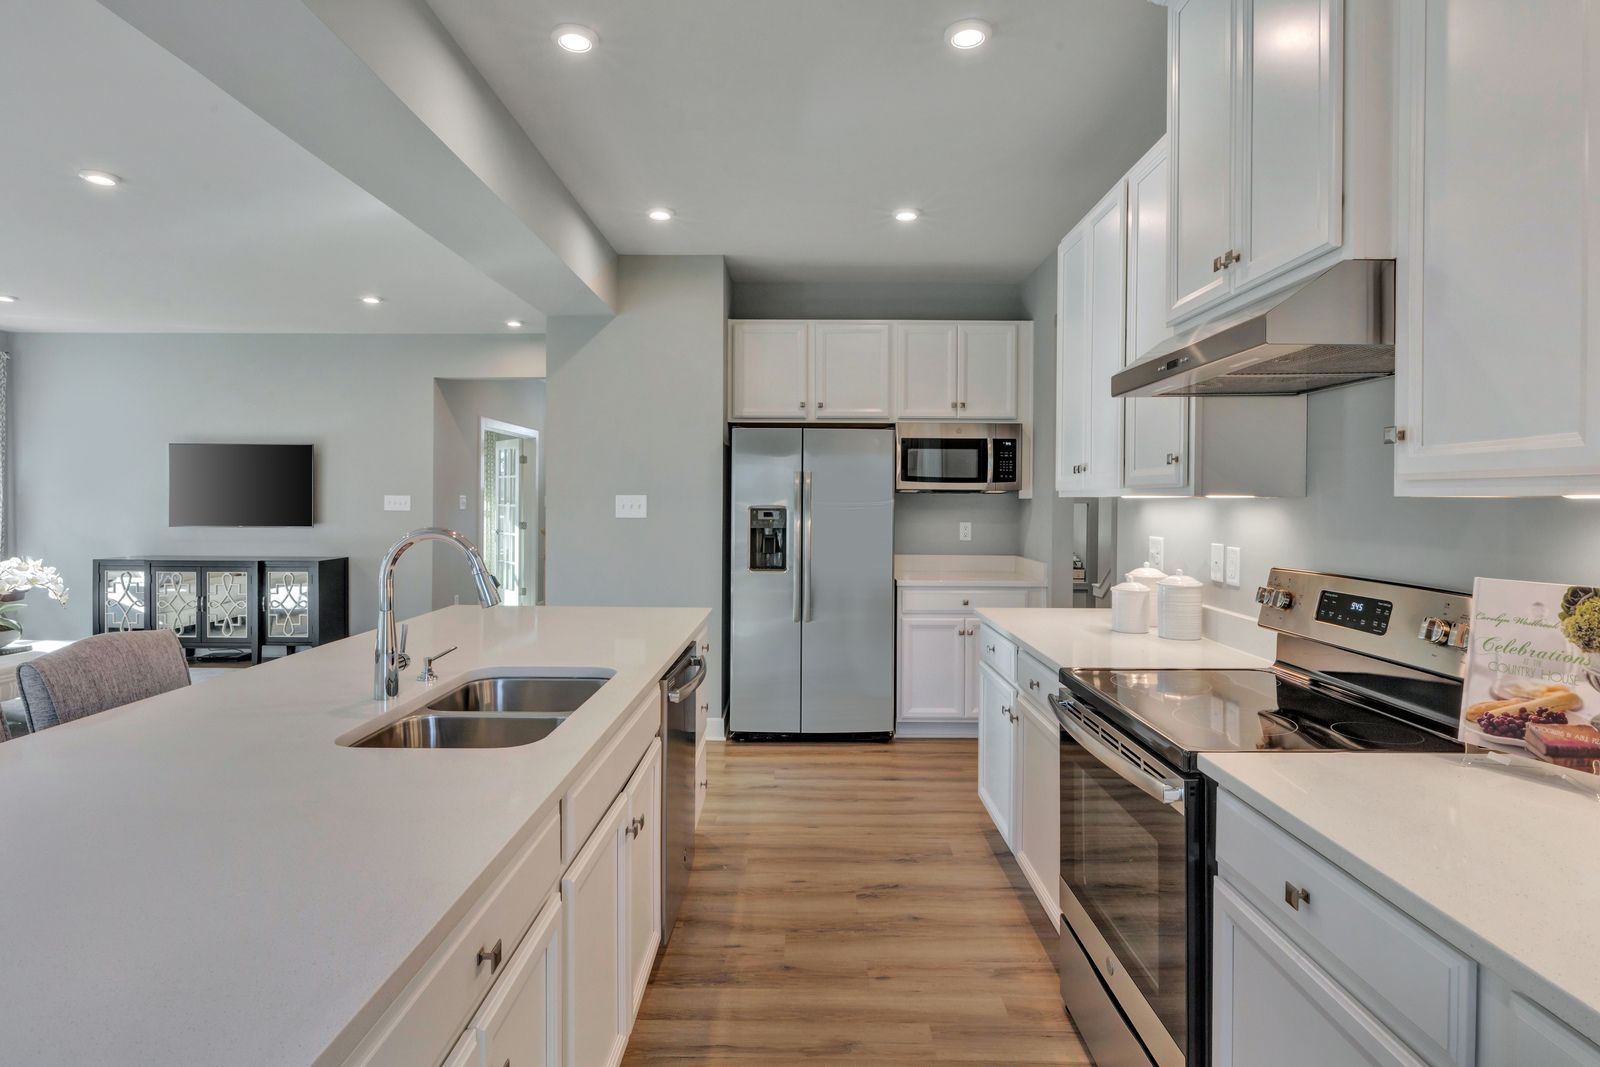 Kitchen featured in the Hudson By Ryan Homes in Philadelphia, NJ